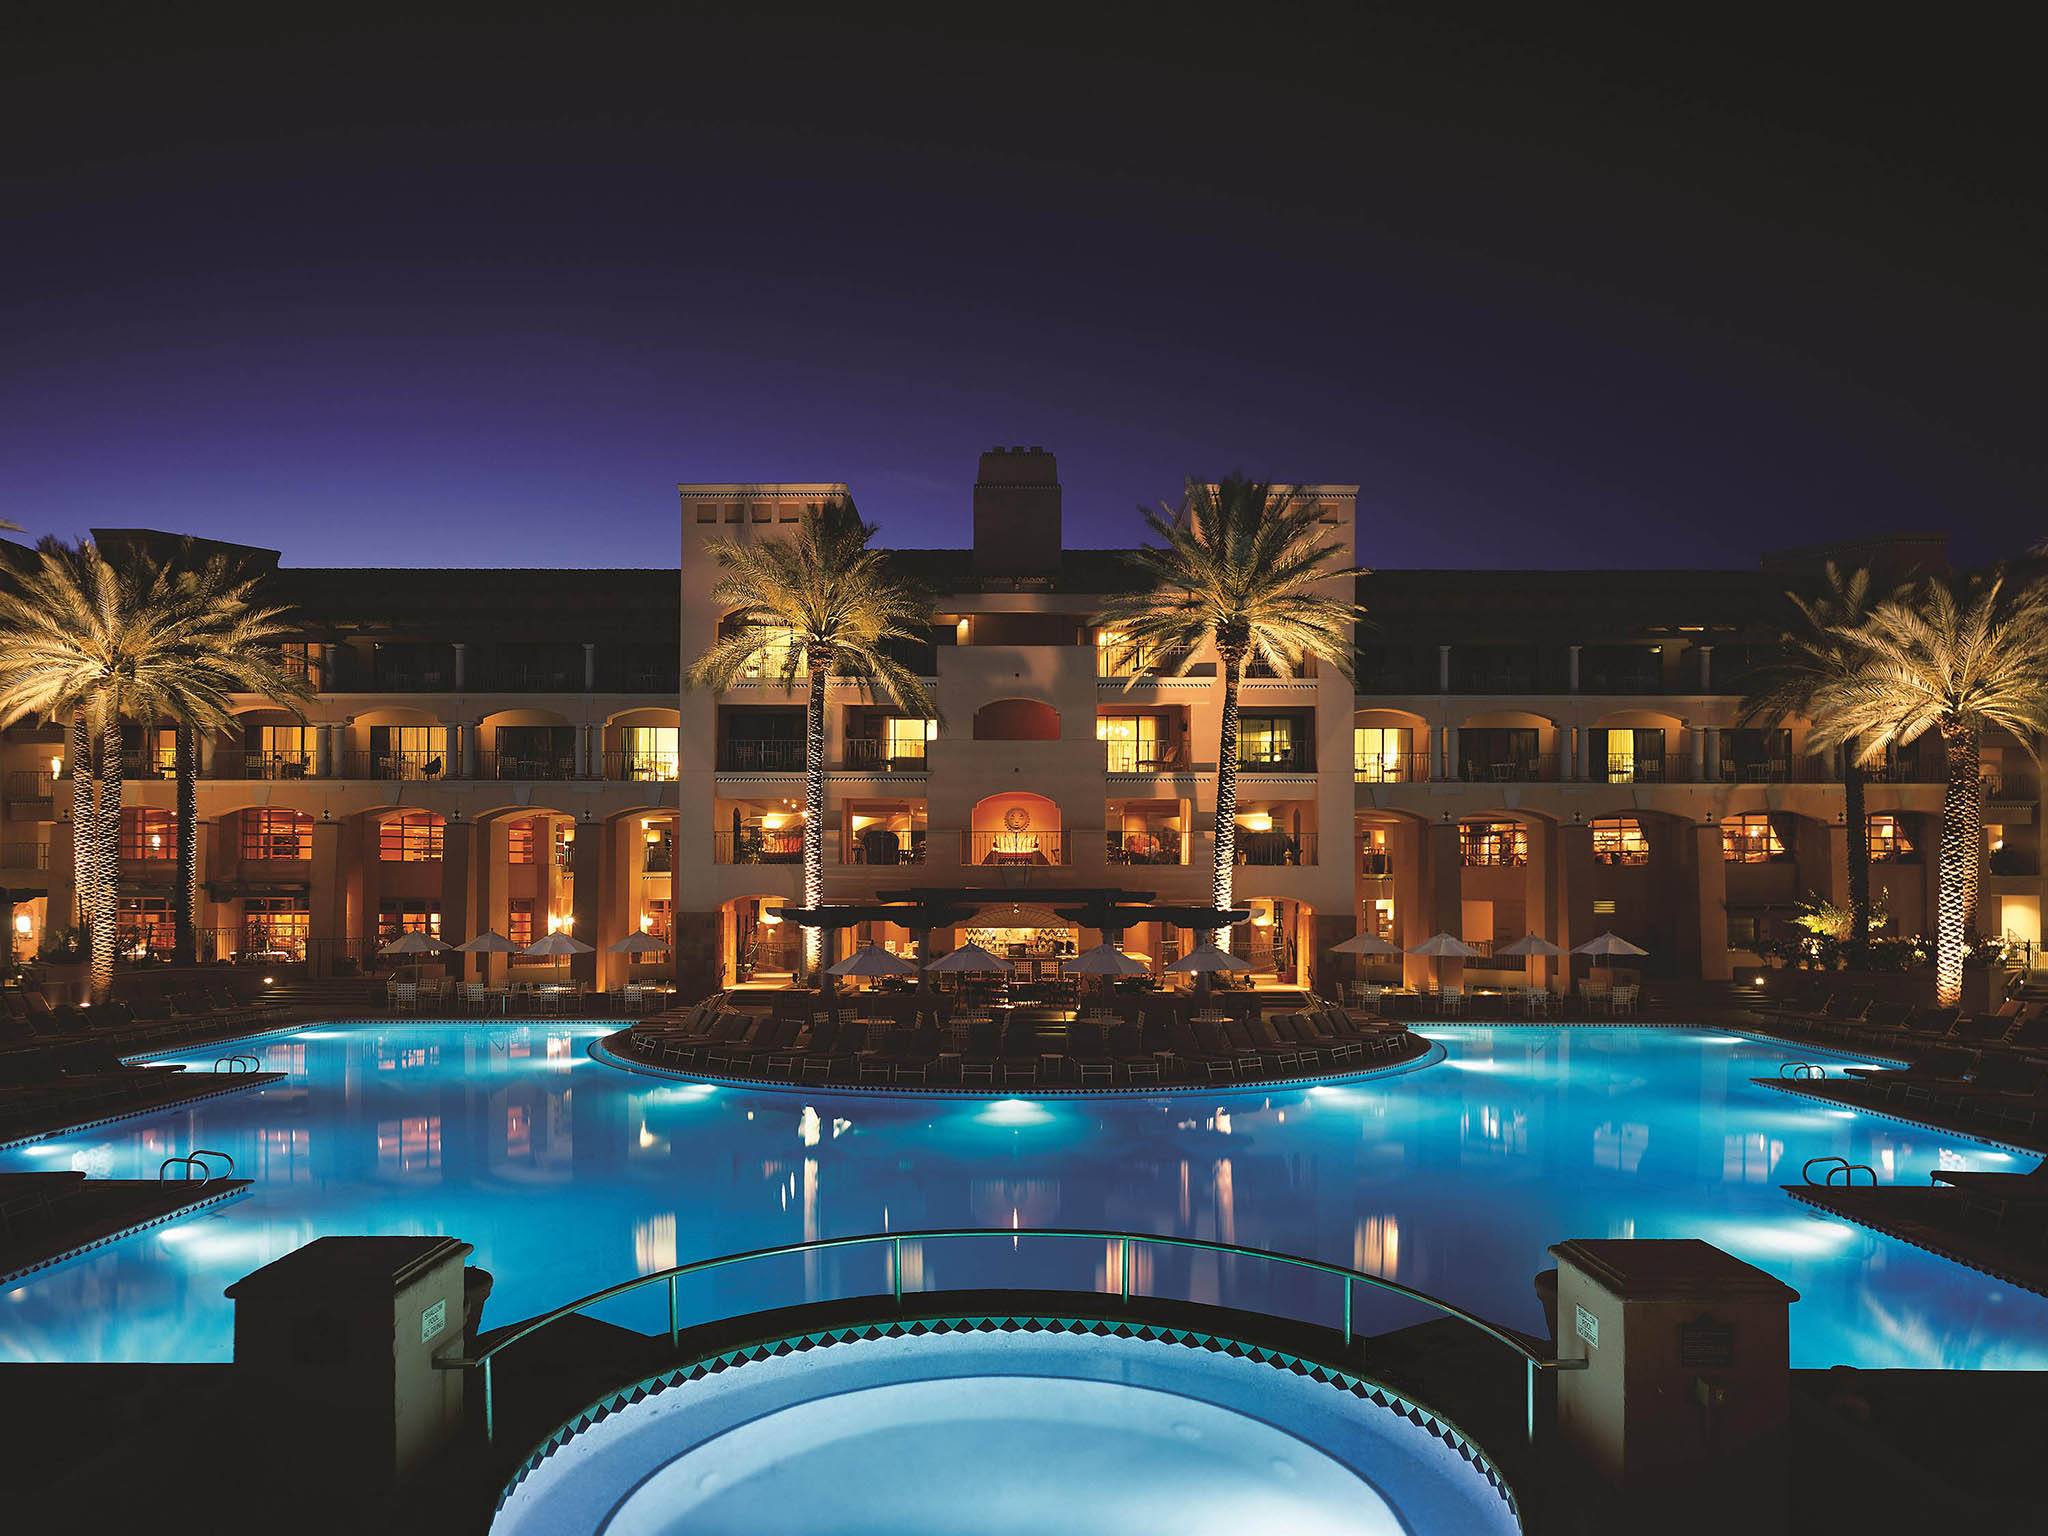 Hotel – Fairmont Scottsdale Princess